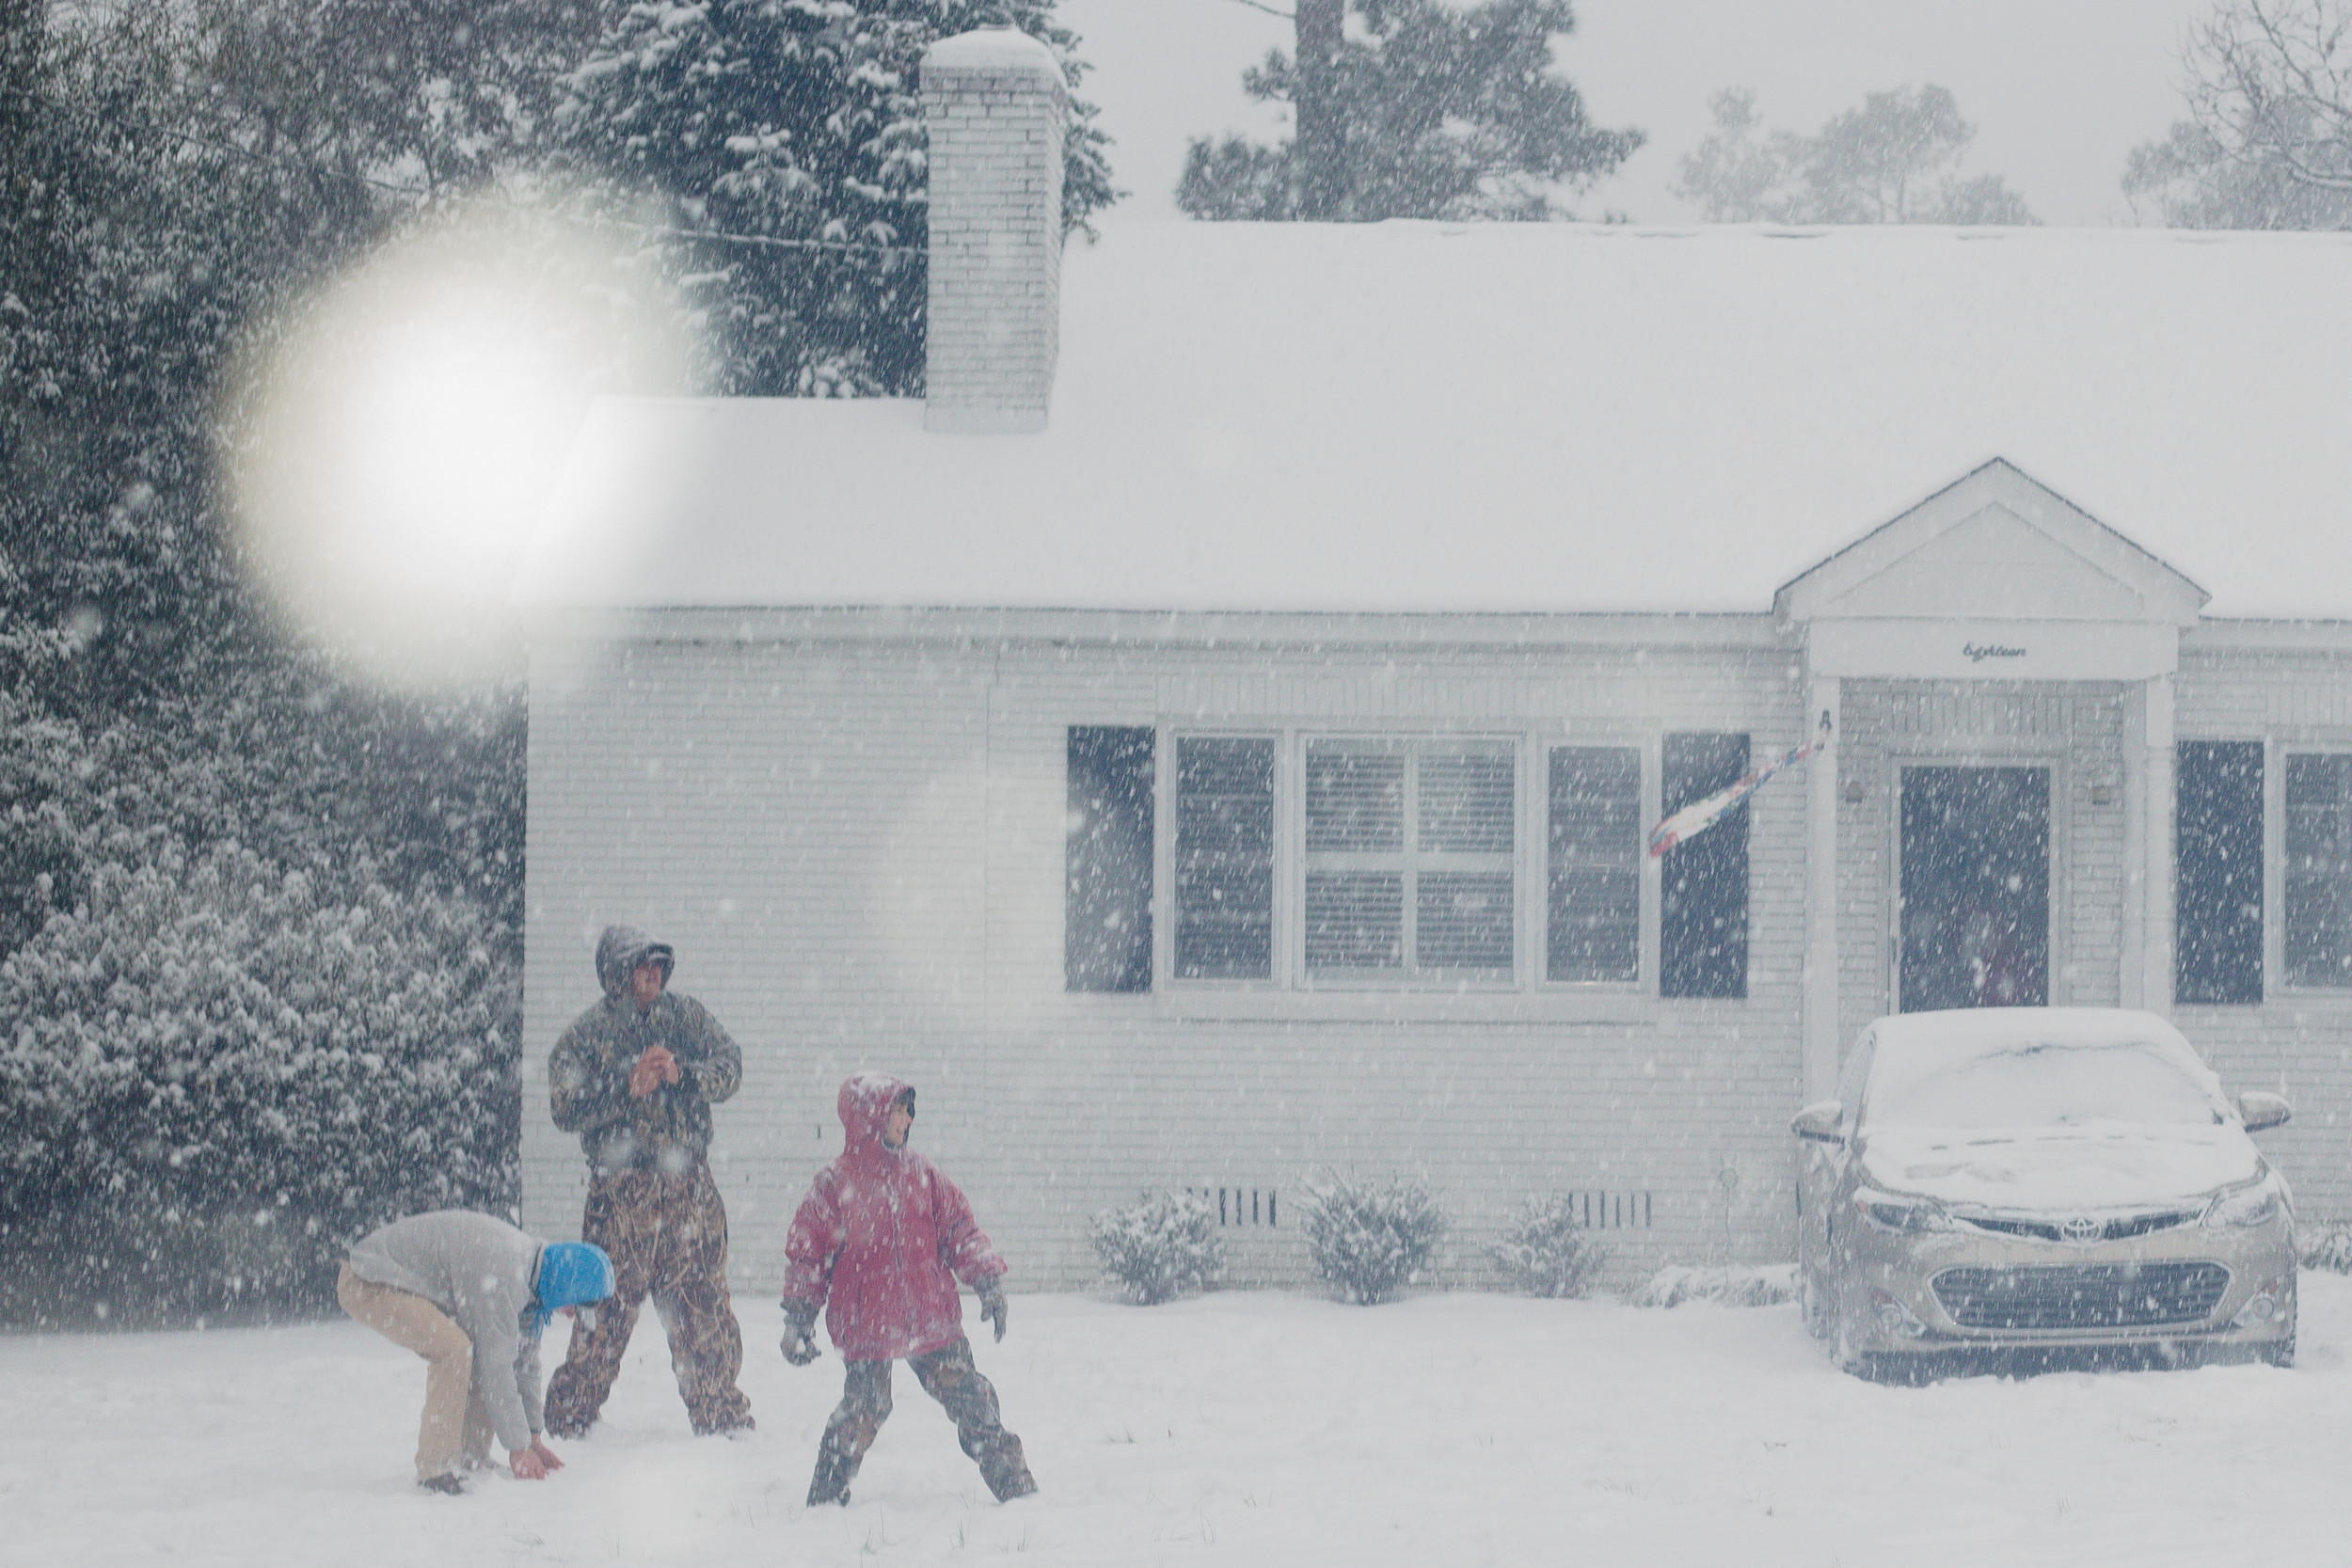 Cameron Henderson (left), William Chandler and Emmit Bilton ready themselves for a snowball fight in a front yard on Riley Street in Sumter Wednesday afternoon.